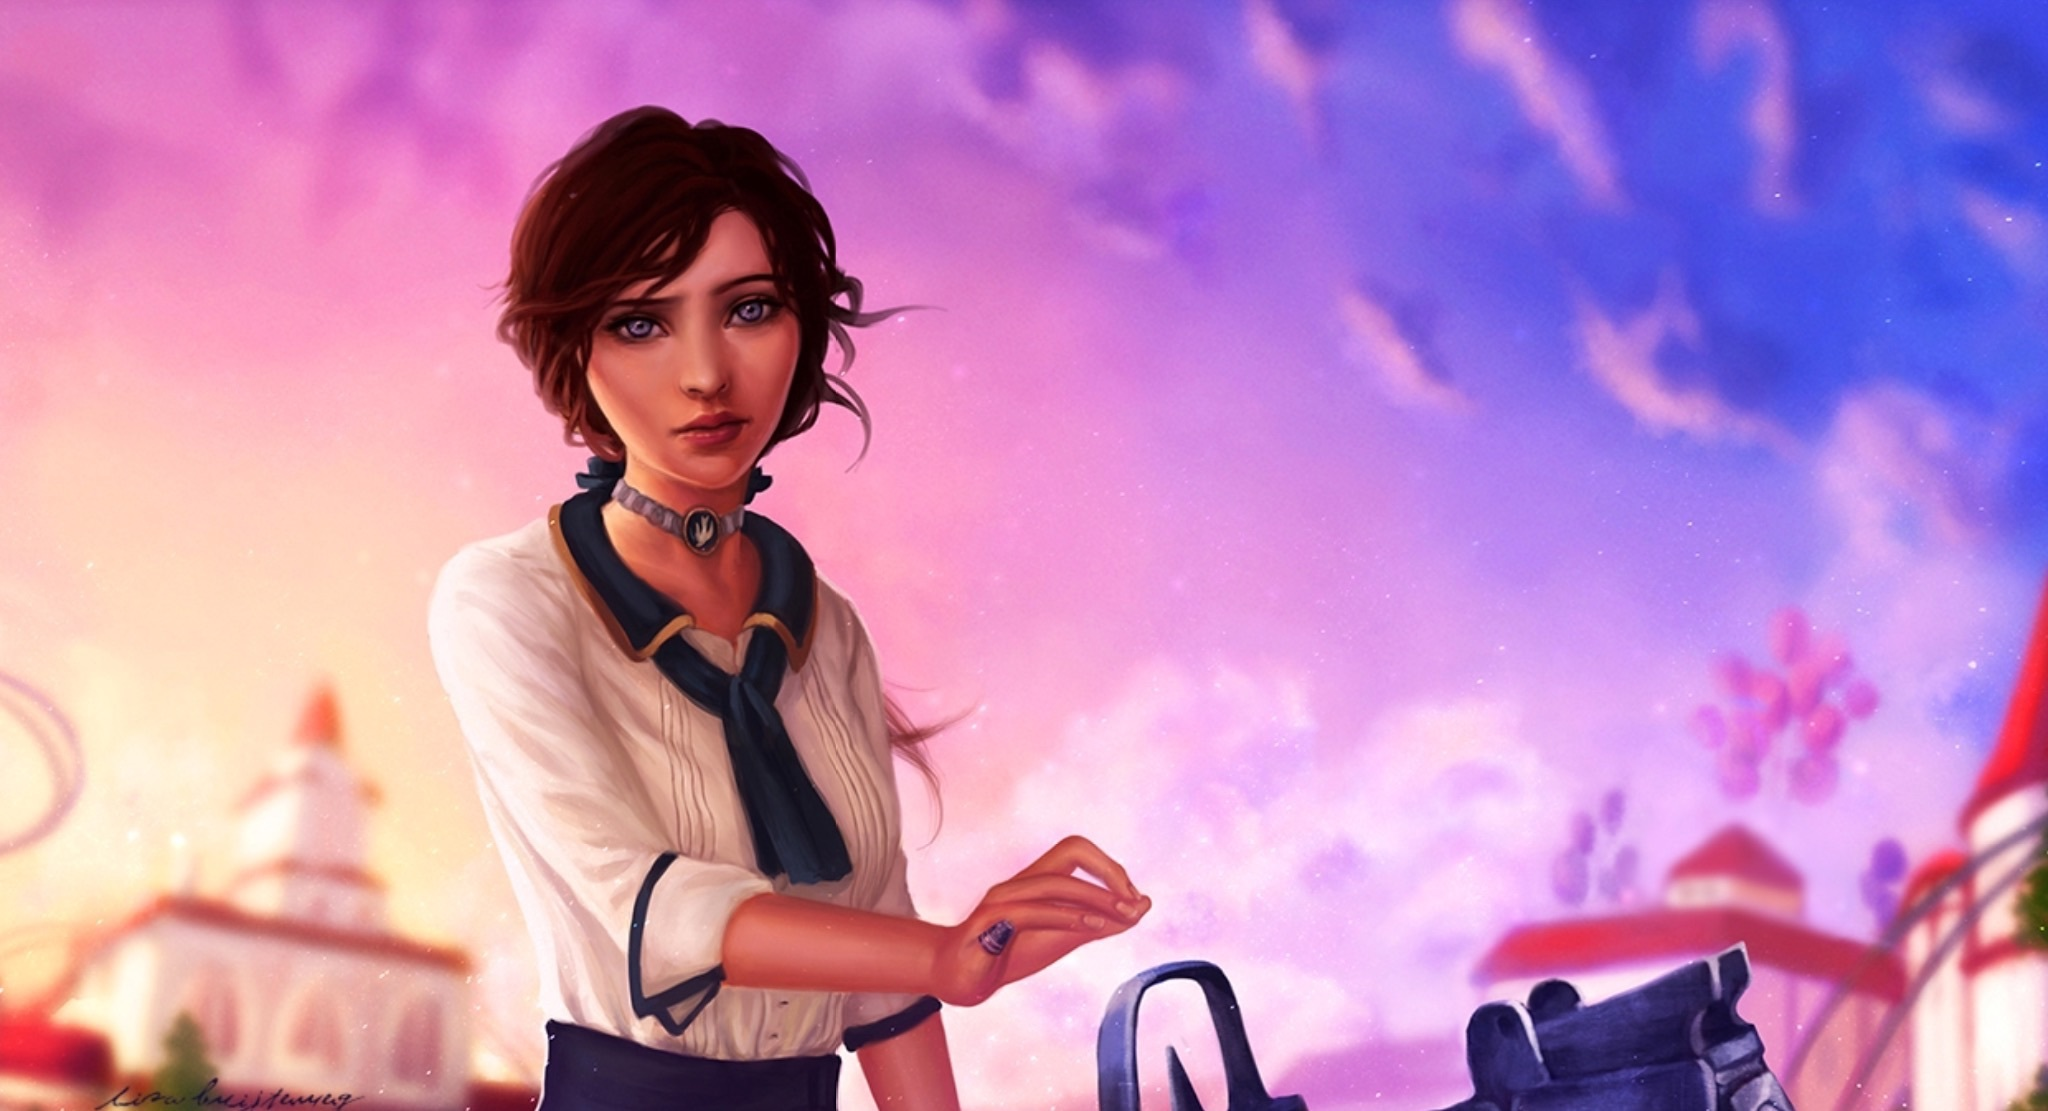 Bioshock Infinite HD Wallpaper | Background Image | 2048x1111 | ID:724788 - Wallpaper Abyss